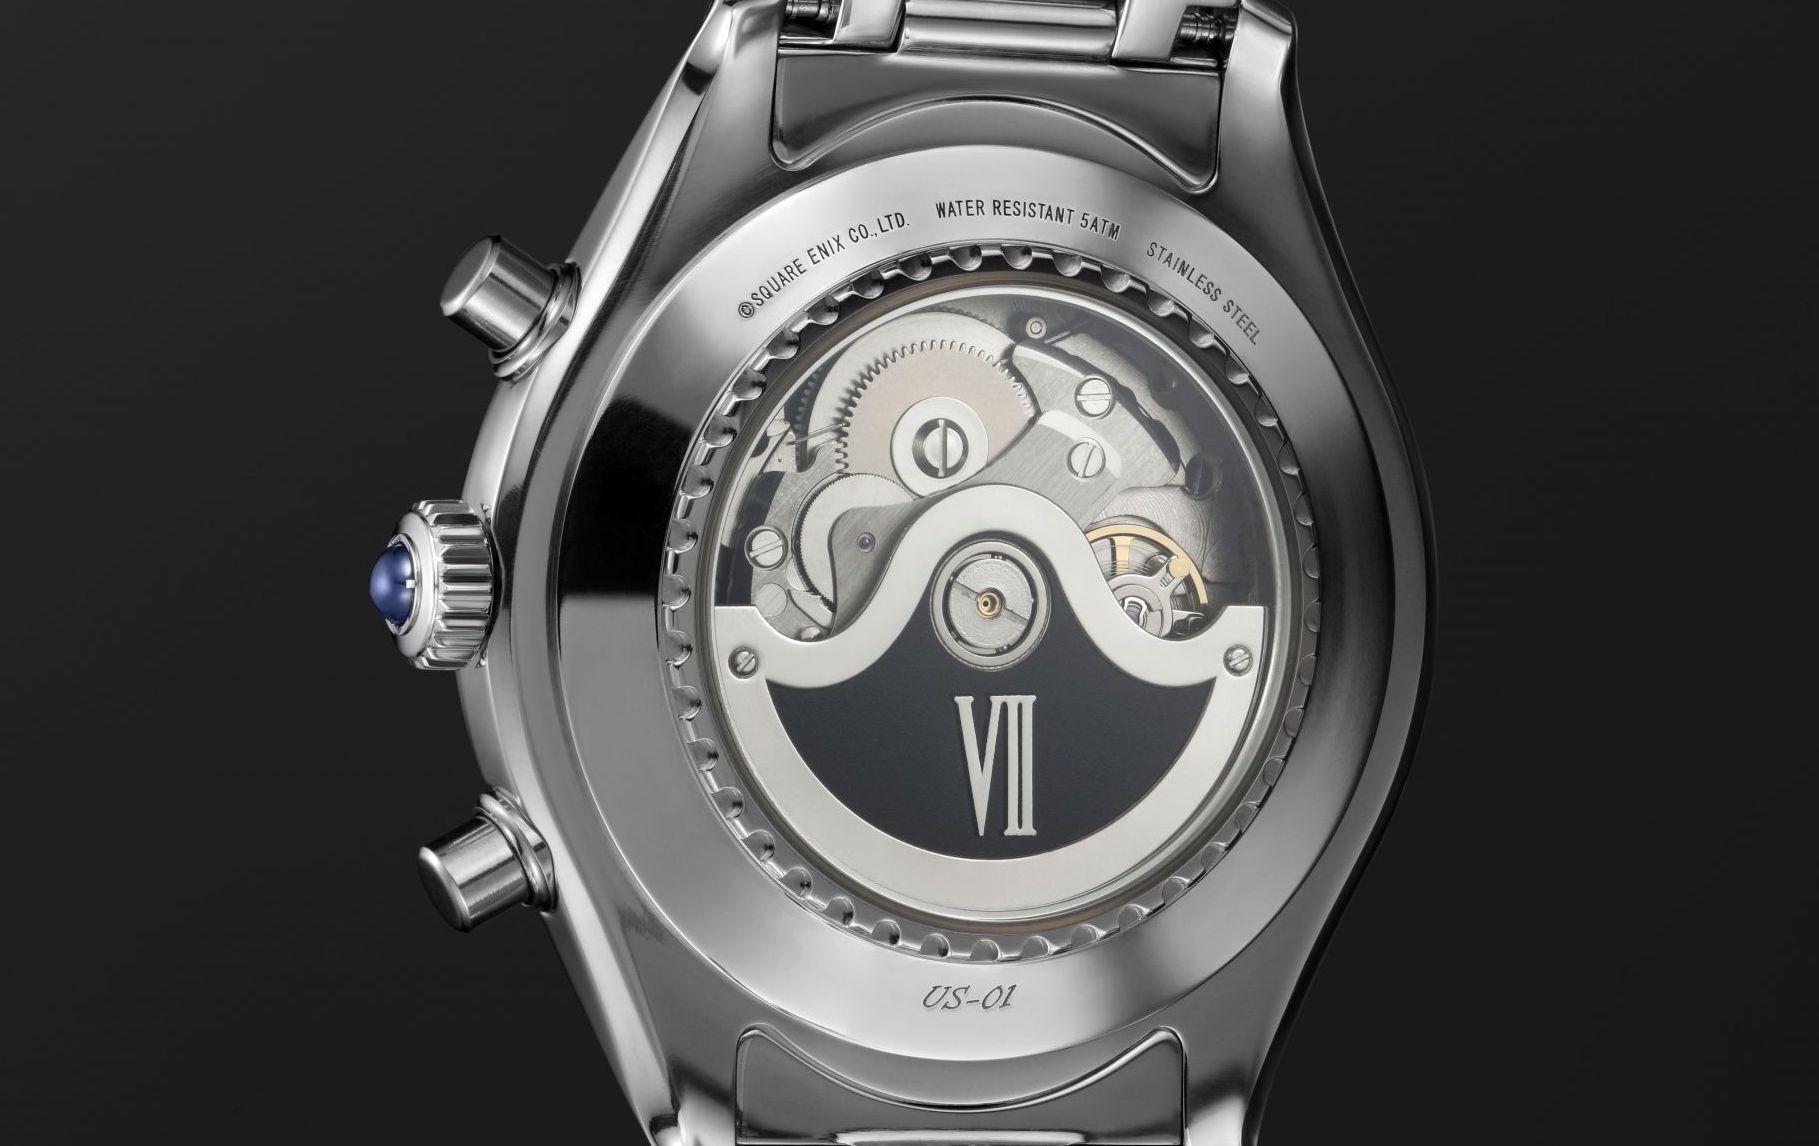 These Beautiful Final Fantasy VII Chronograph Watches Can Be Yours For Just $2,500